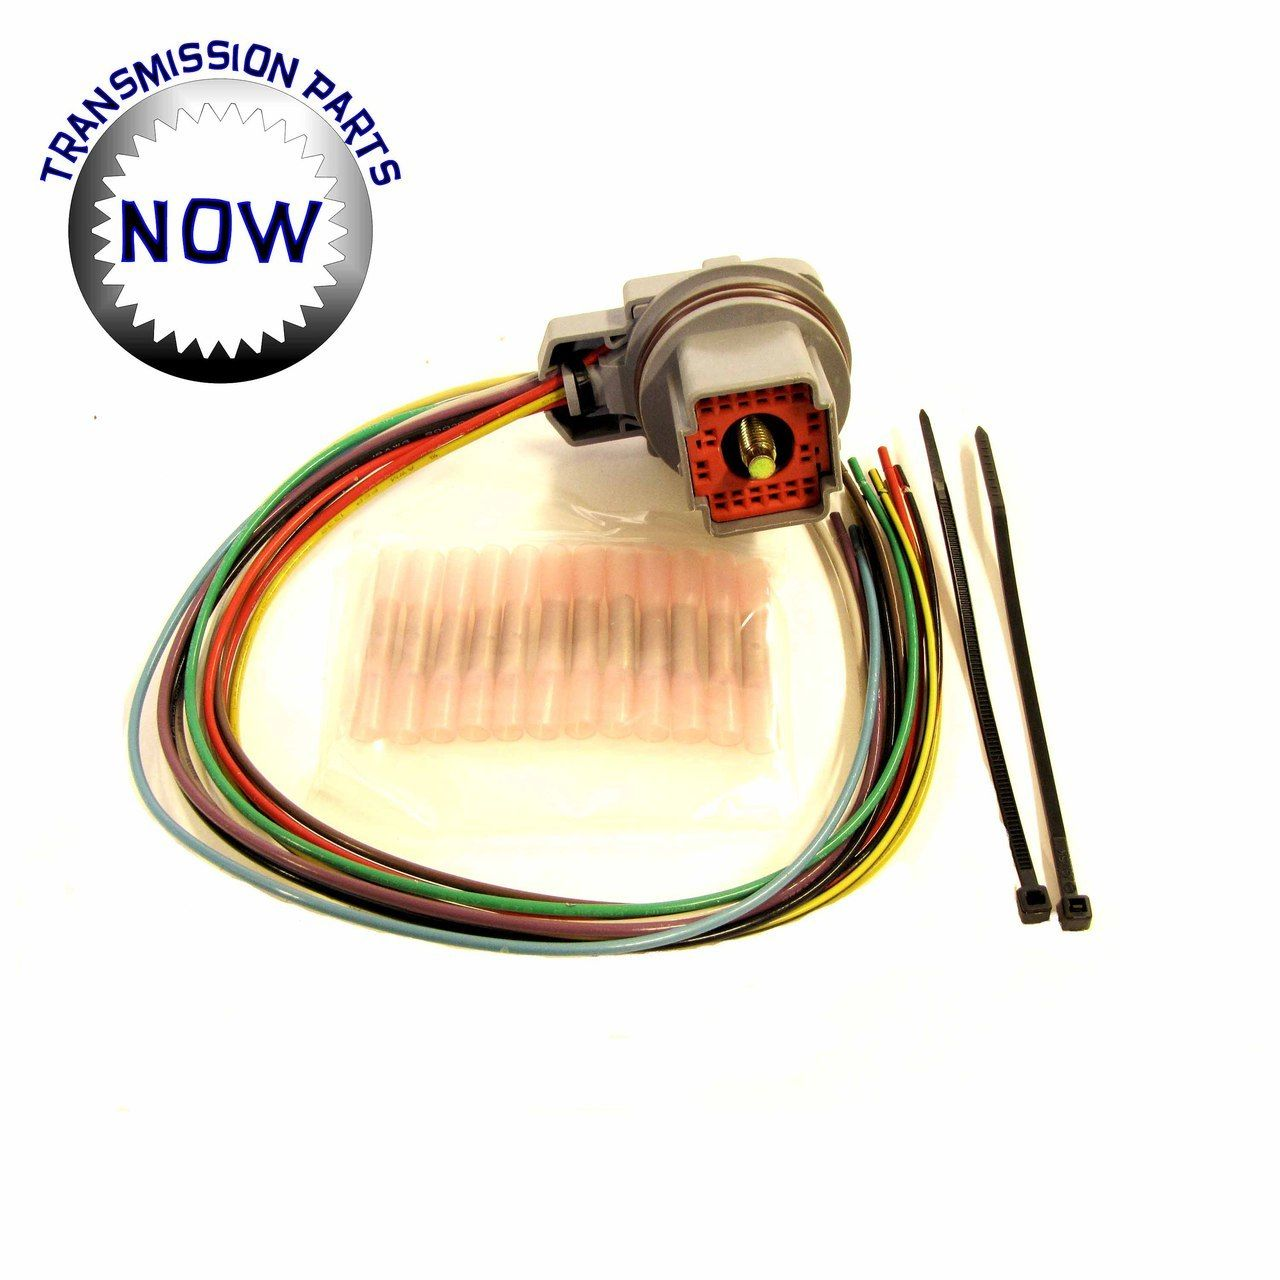 Old Ford Wiring Harness Kits For Cars